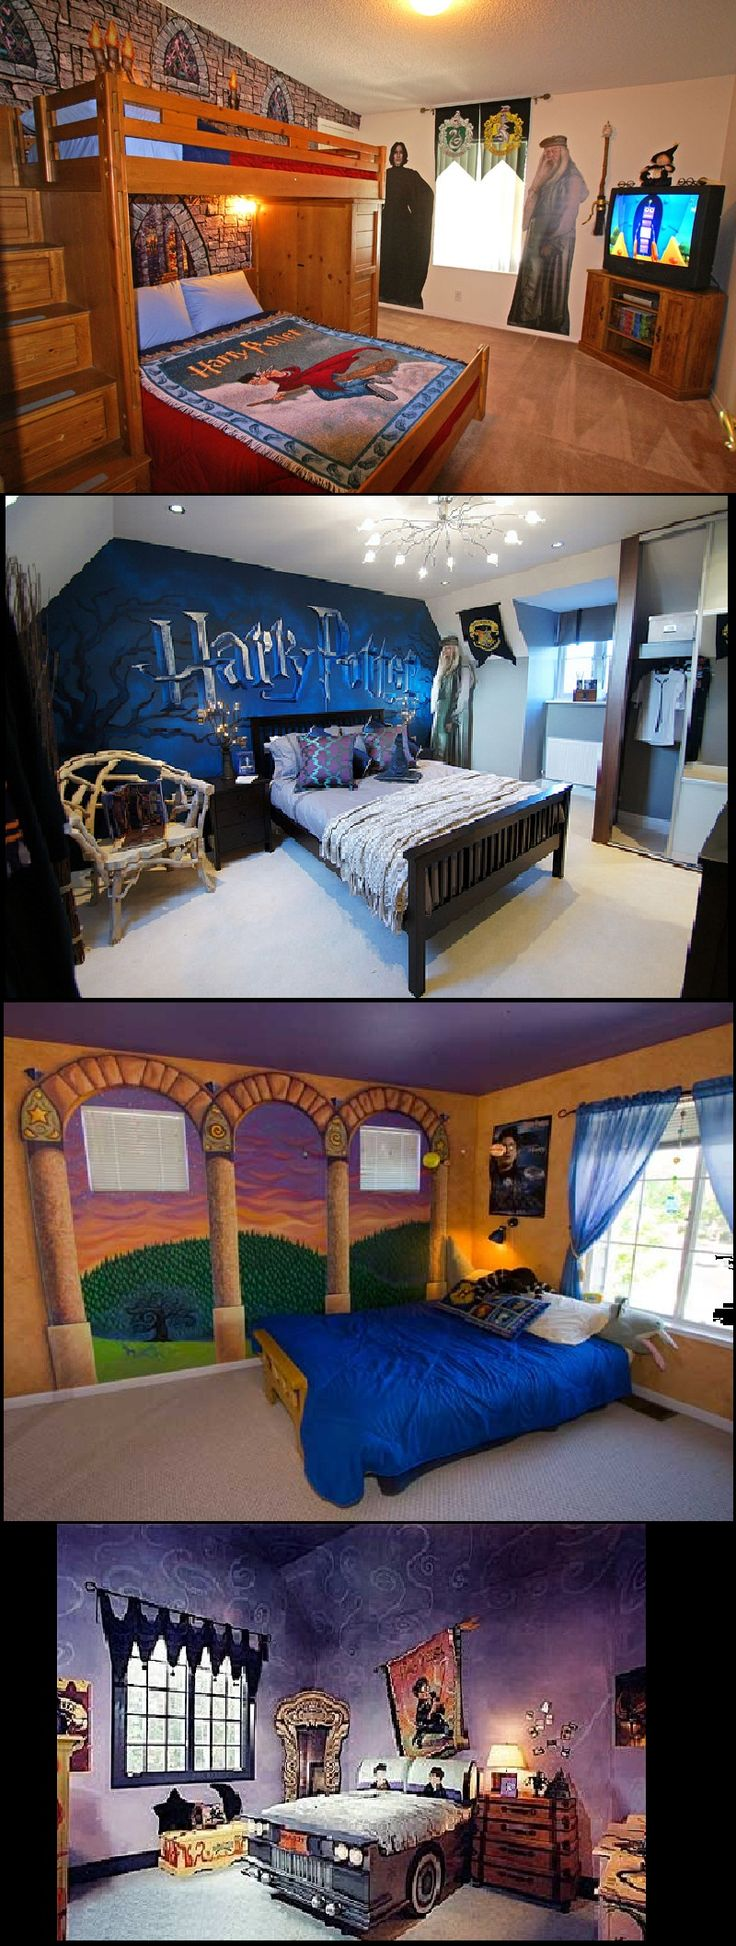 Harry Potter room idea's my daughter is obsessed. looks like the artist in me is coming out soon...lol